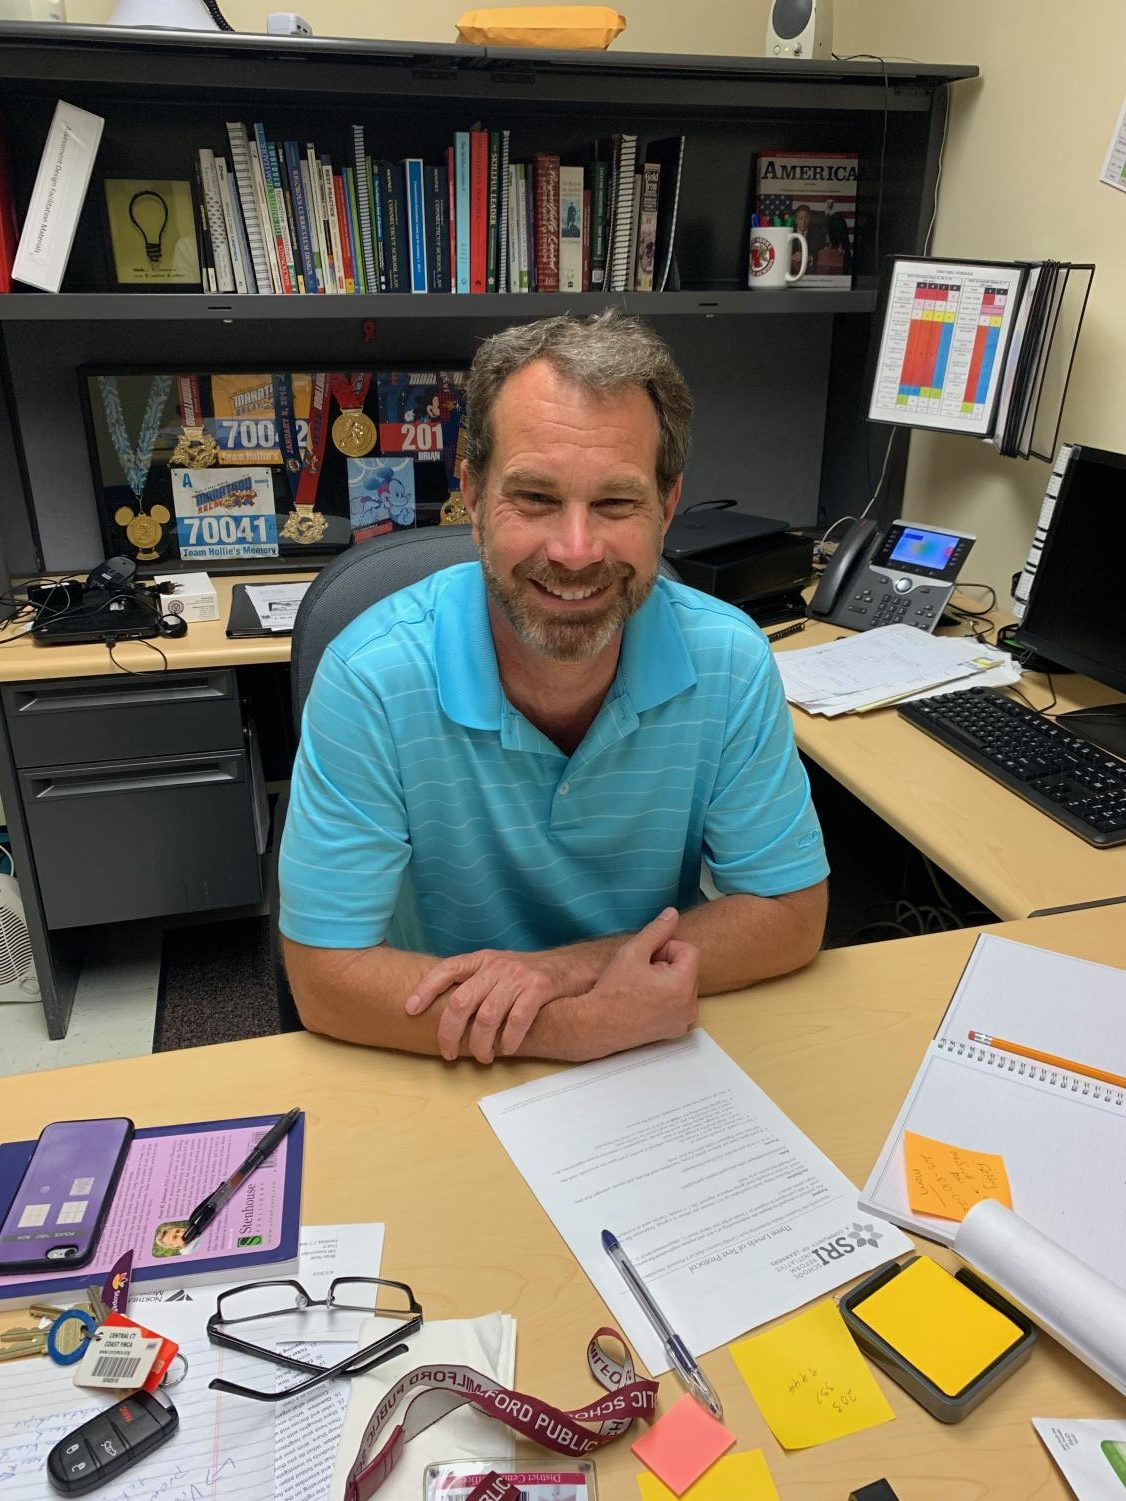 Mr. Brian Scott in his new office on August 13, 2019, excited to start the new school year. Photo taken by Carly Whelan.